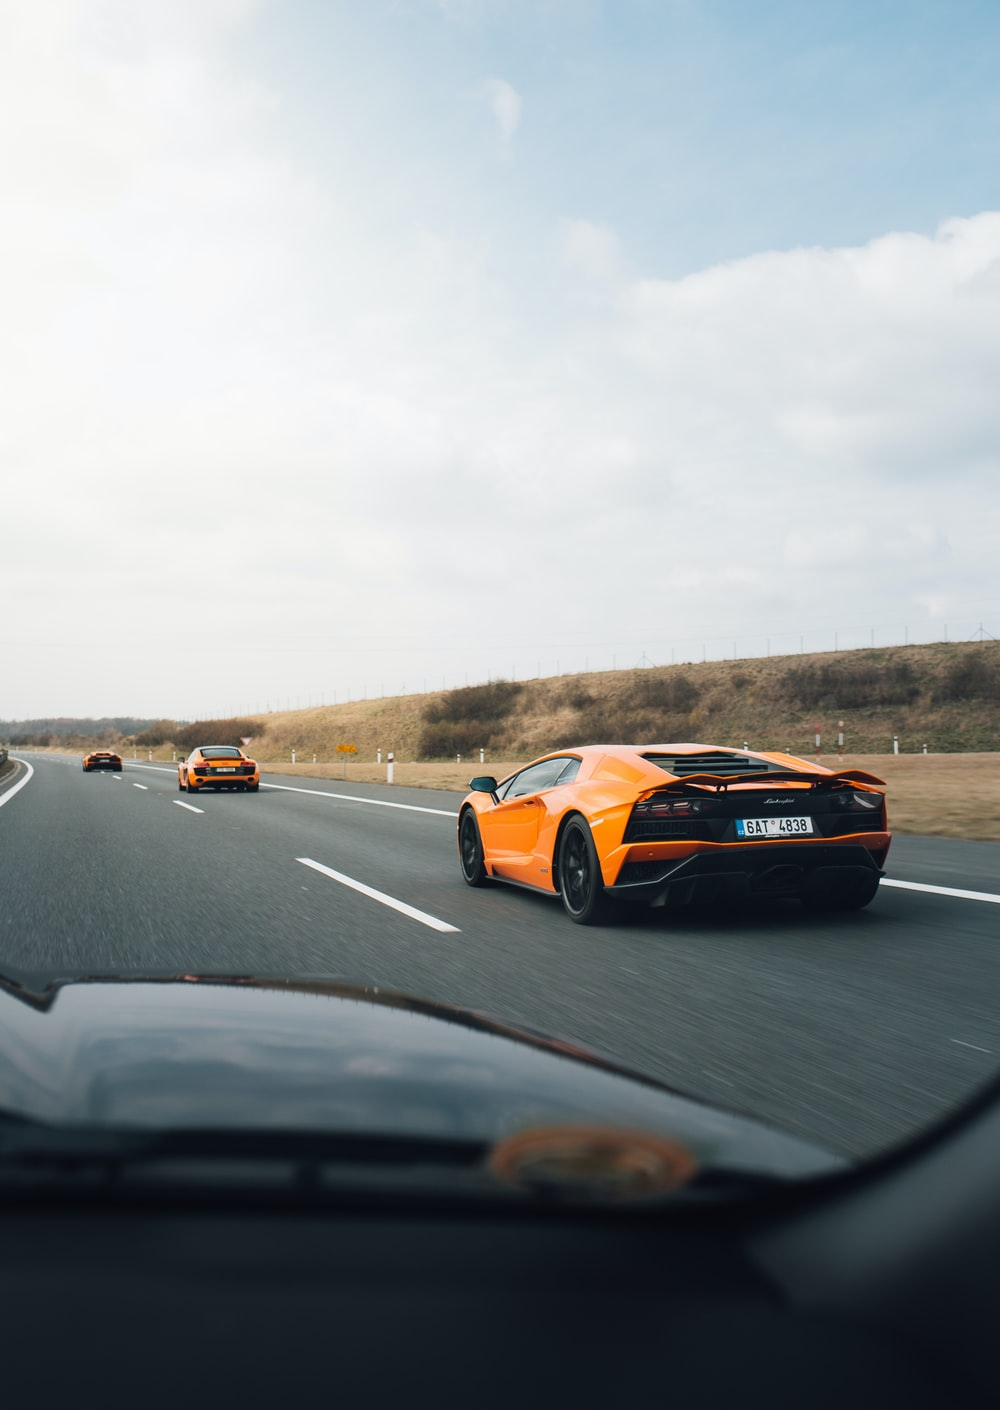 orange Lamborghini on road